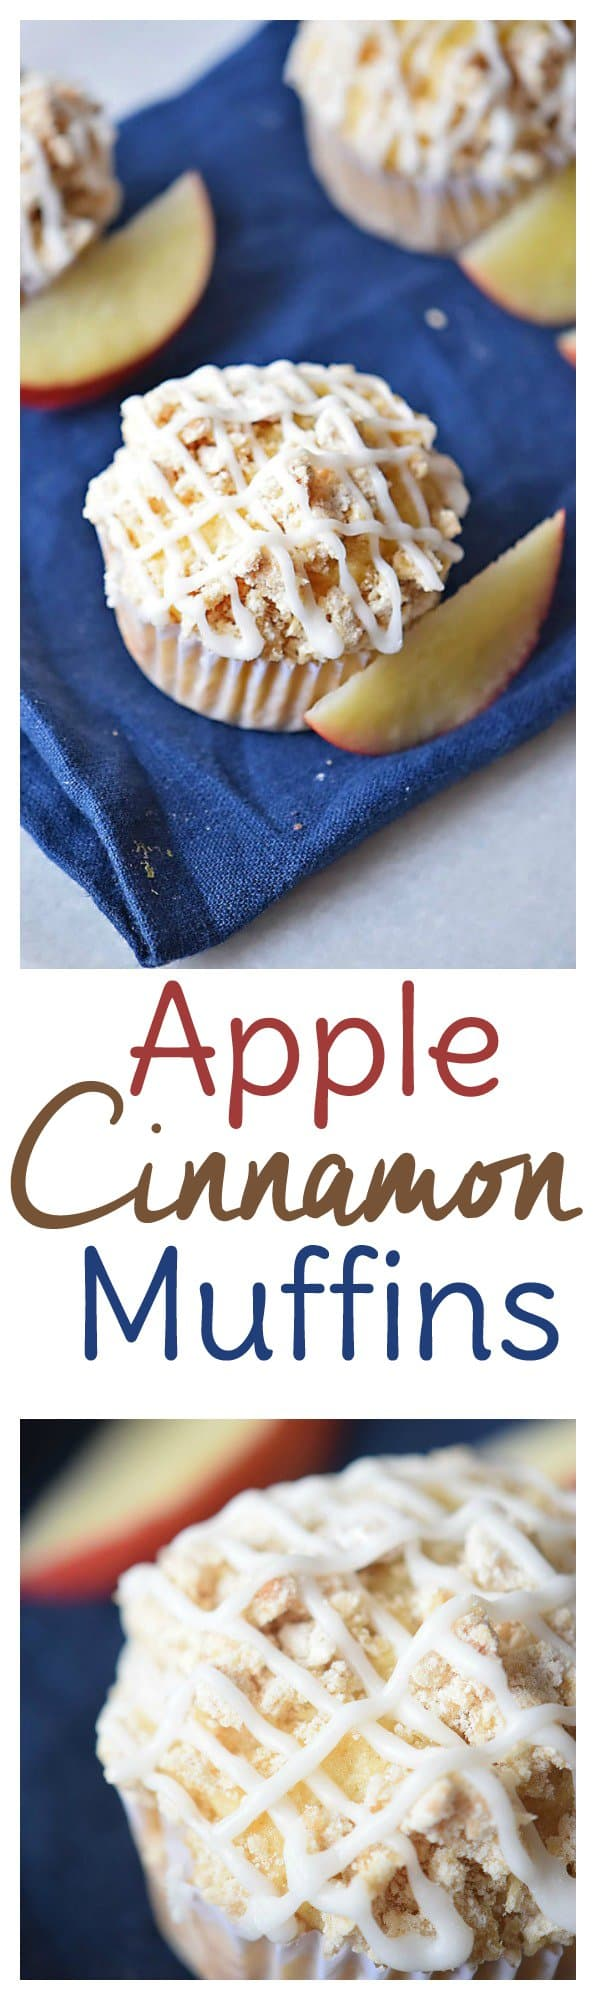 Tasty and convenient, muffin recipes always make good breakfast ideas, especially if you eat on-the-go. Try these apple cinnamon muffins for a tasty way to start your day.